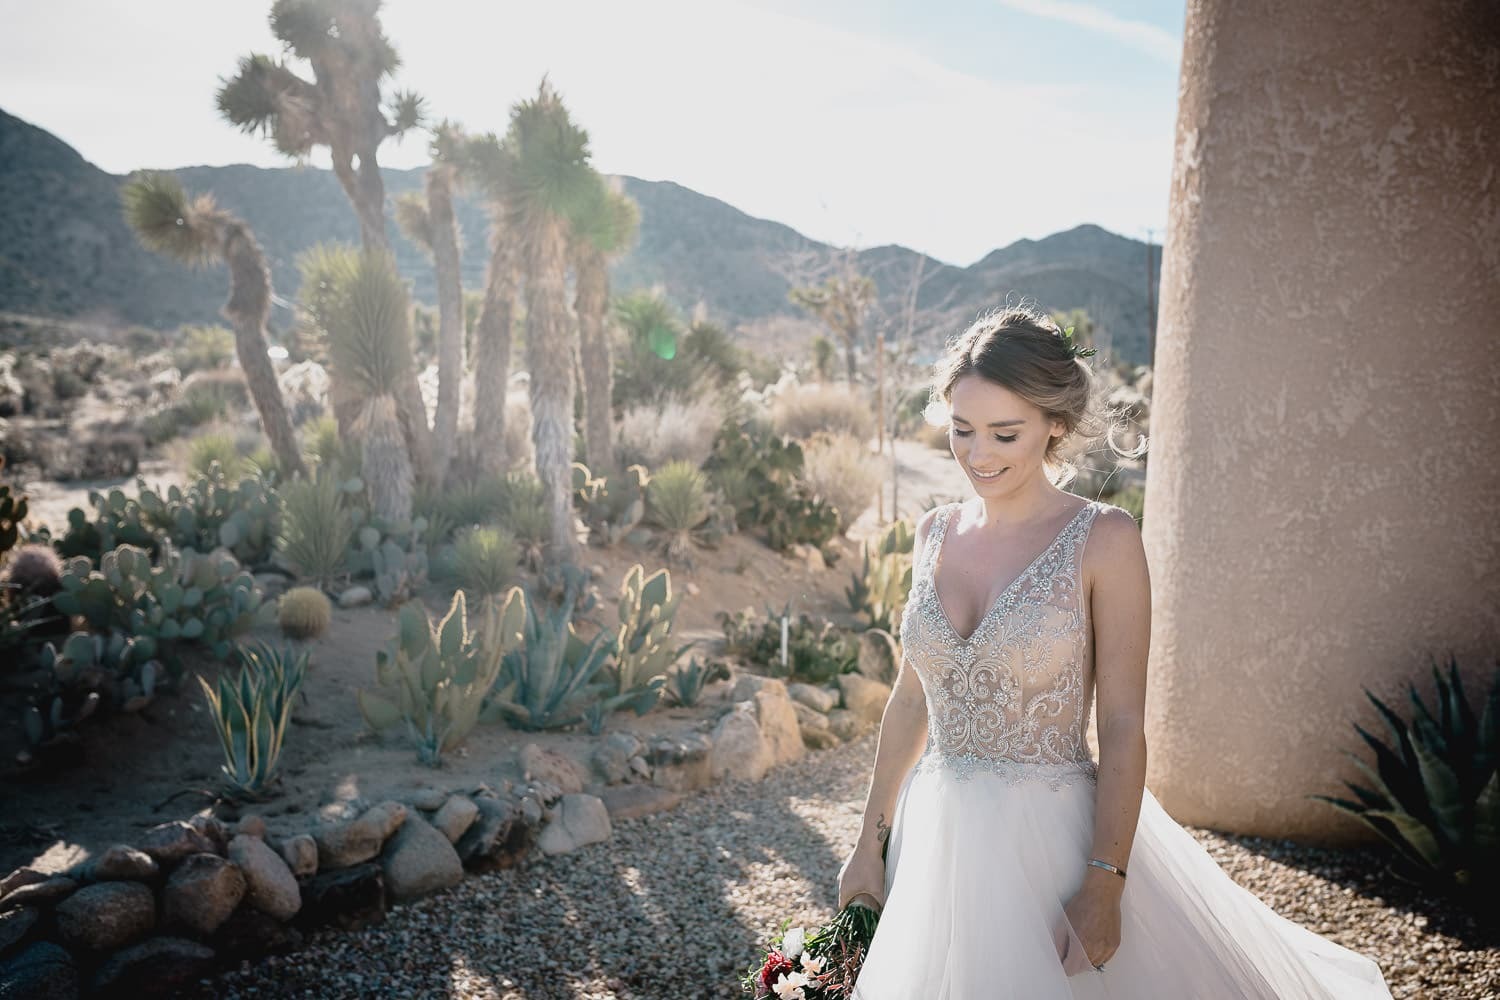 Melanie + Anthony Joshua Tree Intimate Elopement 8